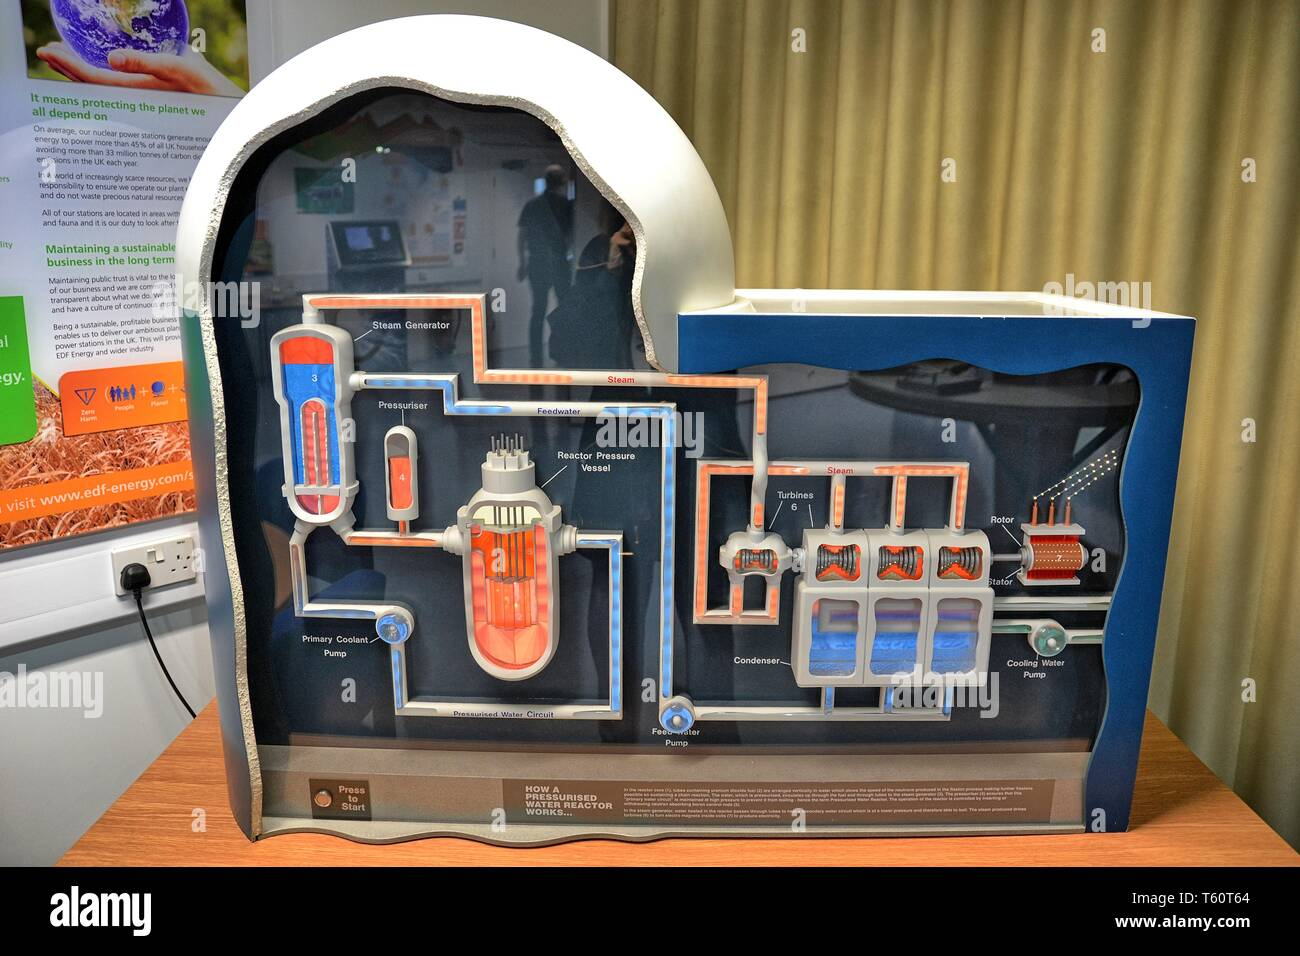 Model of how the power is generated at the Visitor Centre, inside the EDF Nuclear Power Station at Sizewell, Suffolk, UK. Nuclear Power Plant - Stock Image